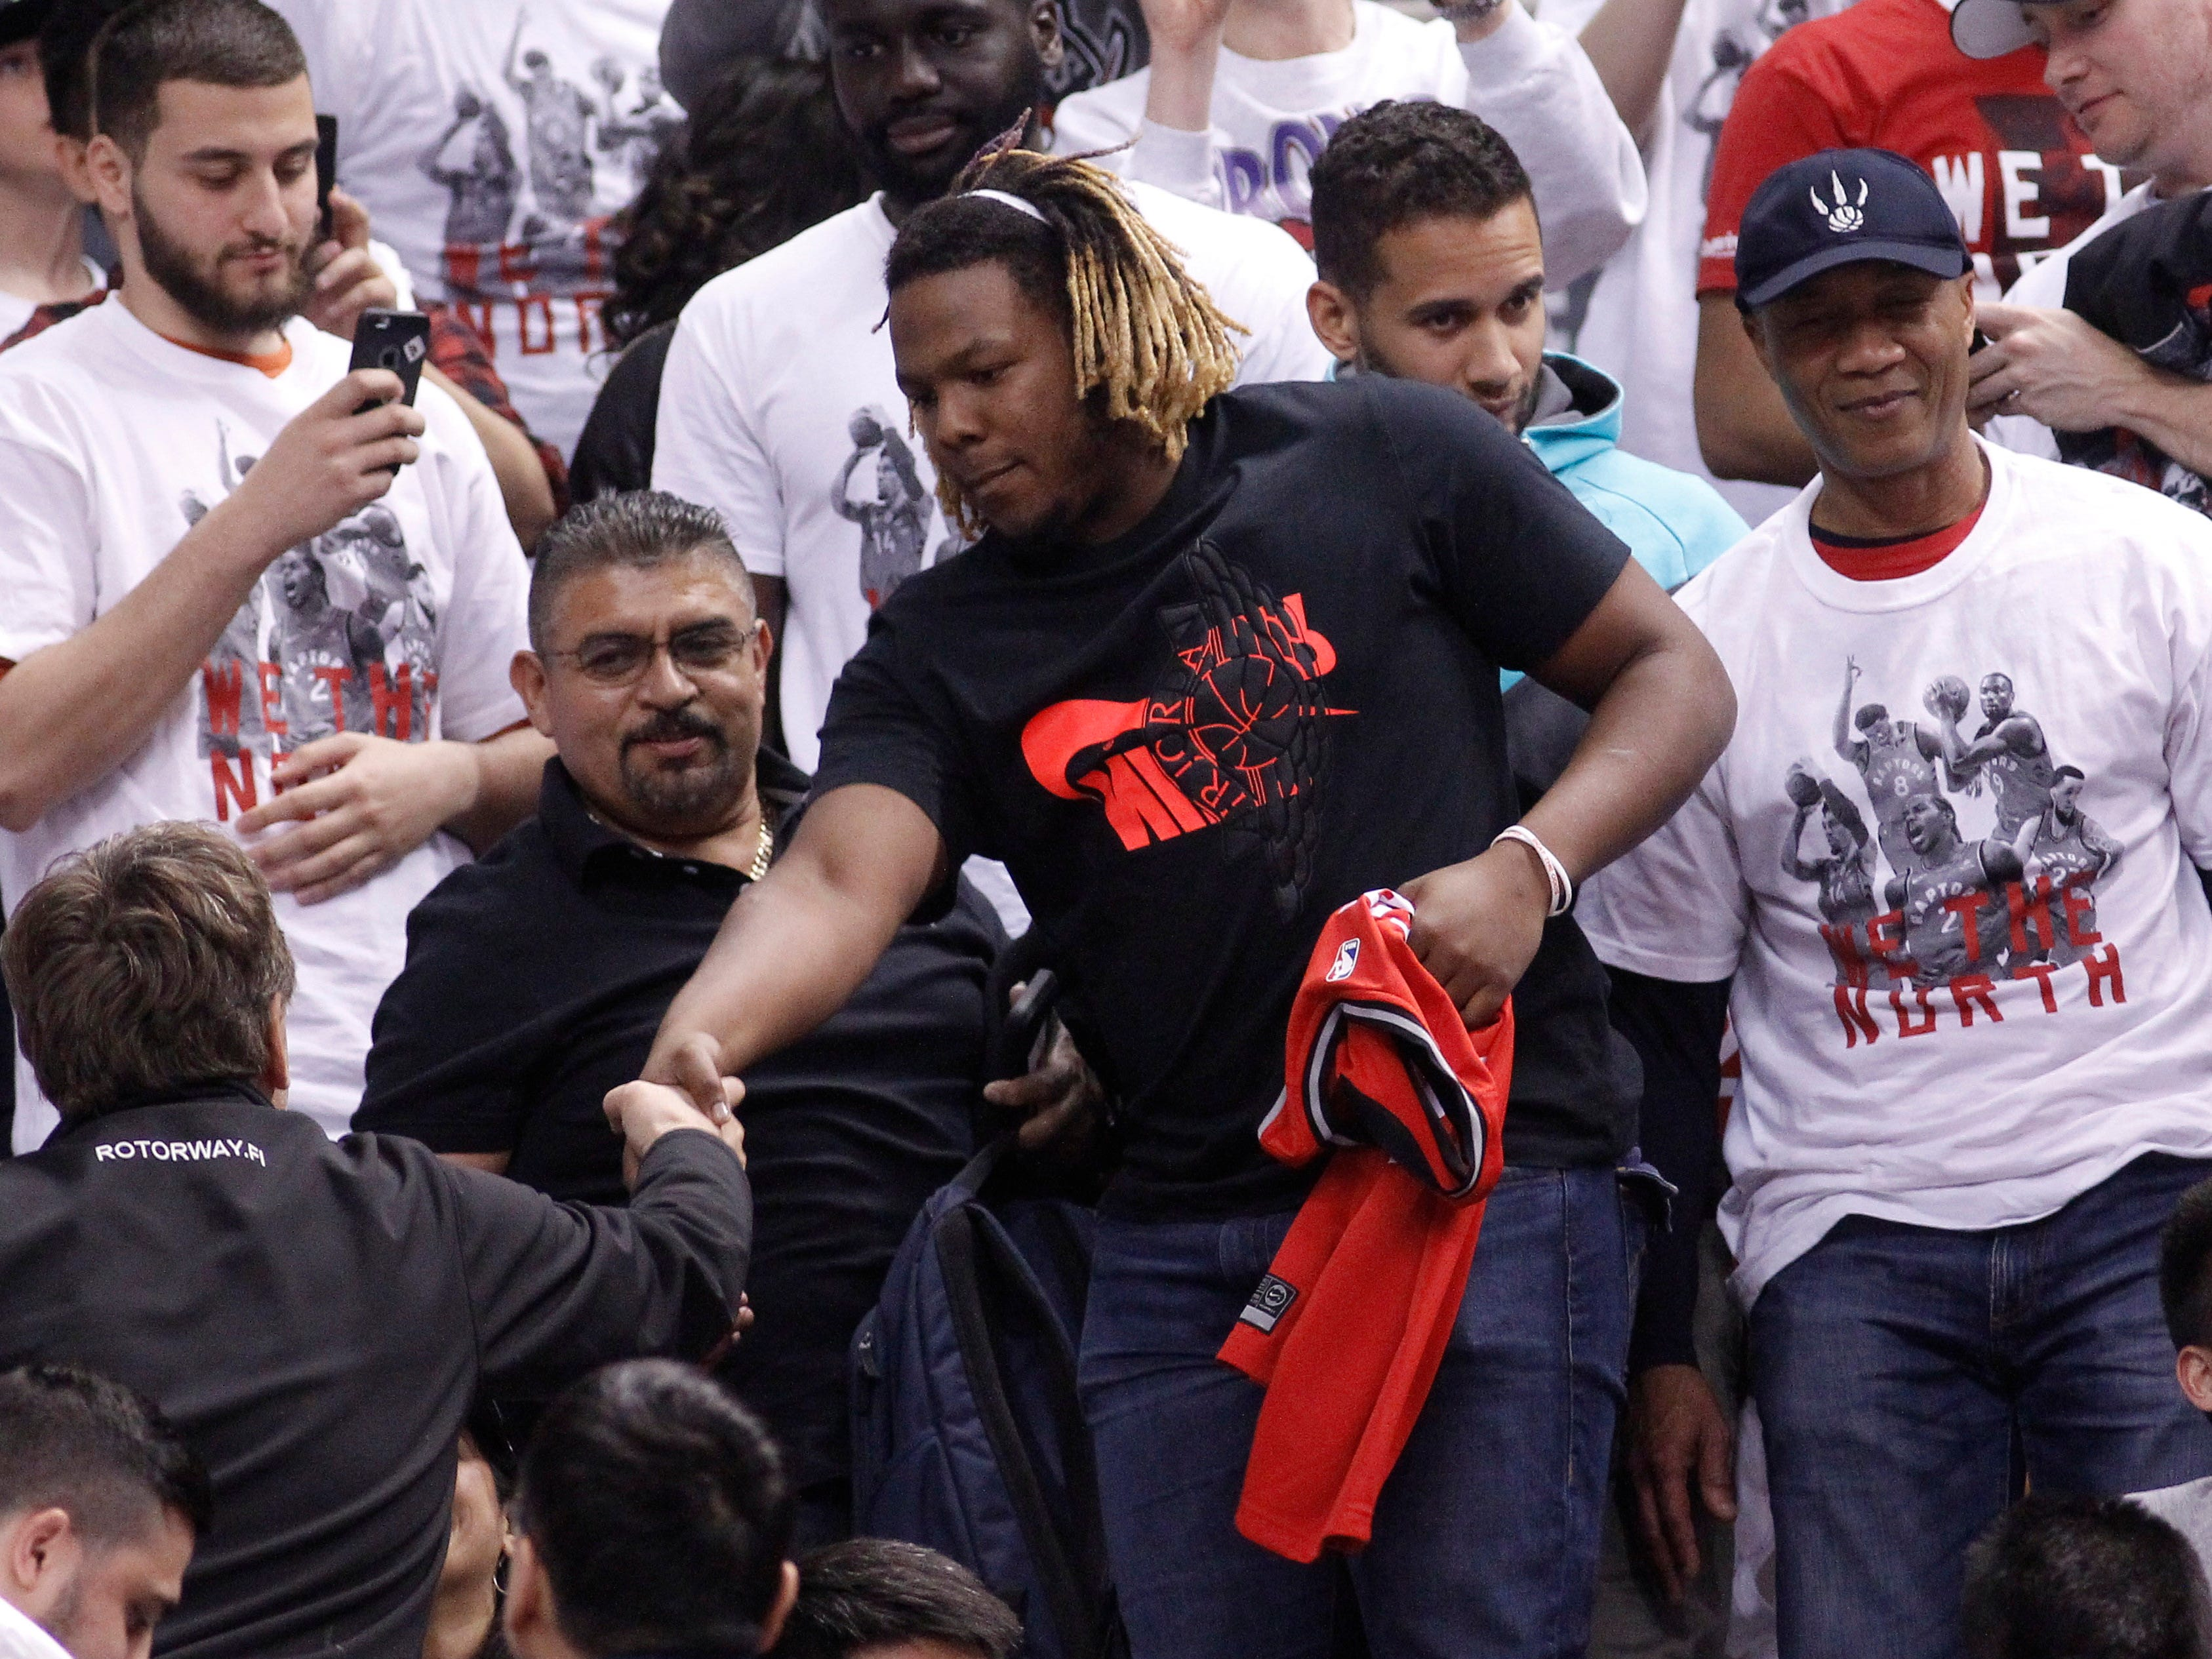 April 27: Toronto Blue Jays player Vladimir Guerrero Jr. greets fans during Game 1 between the Raptors and 76ers in Toronto.